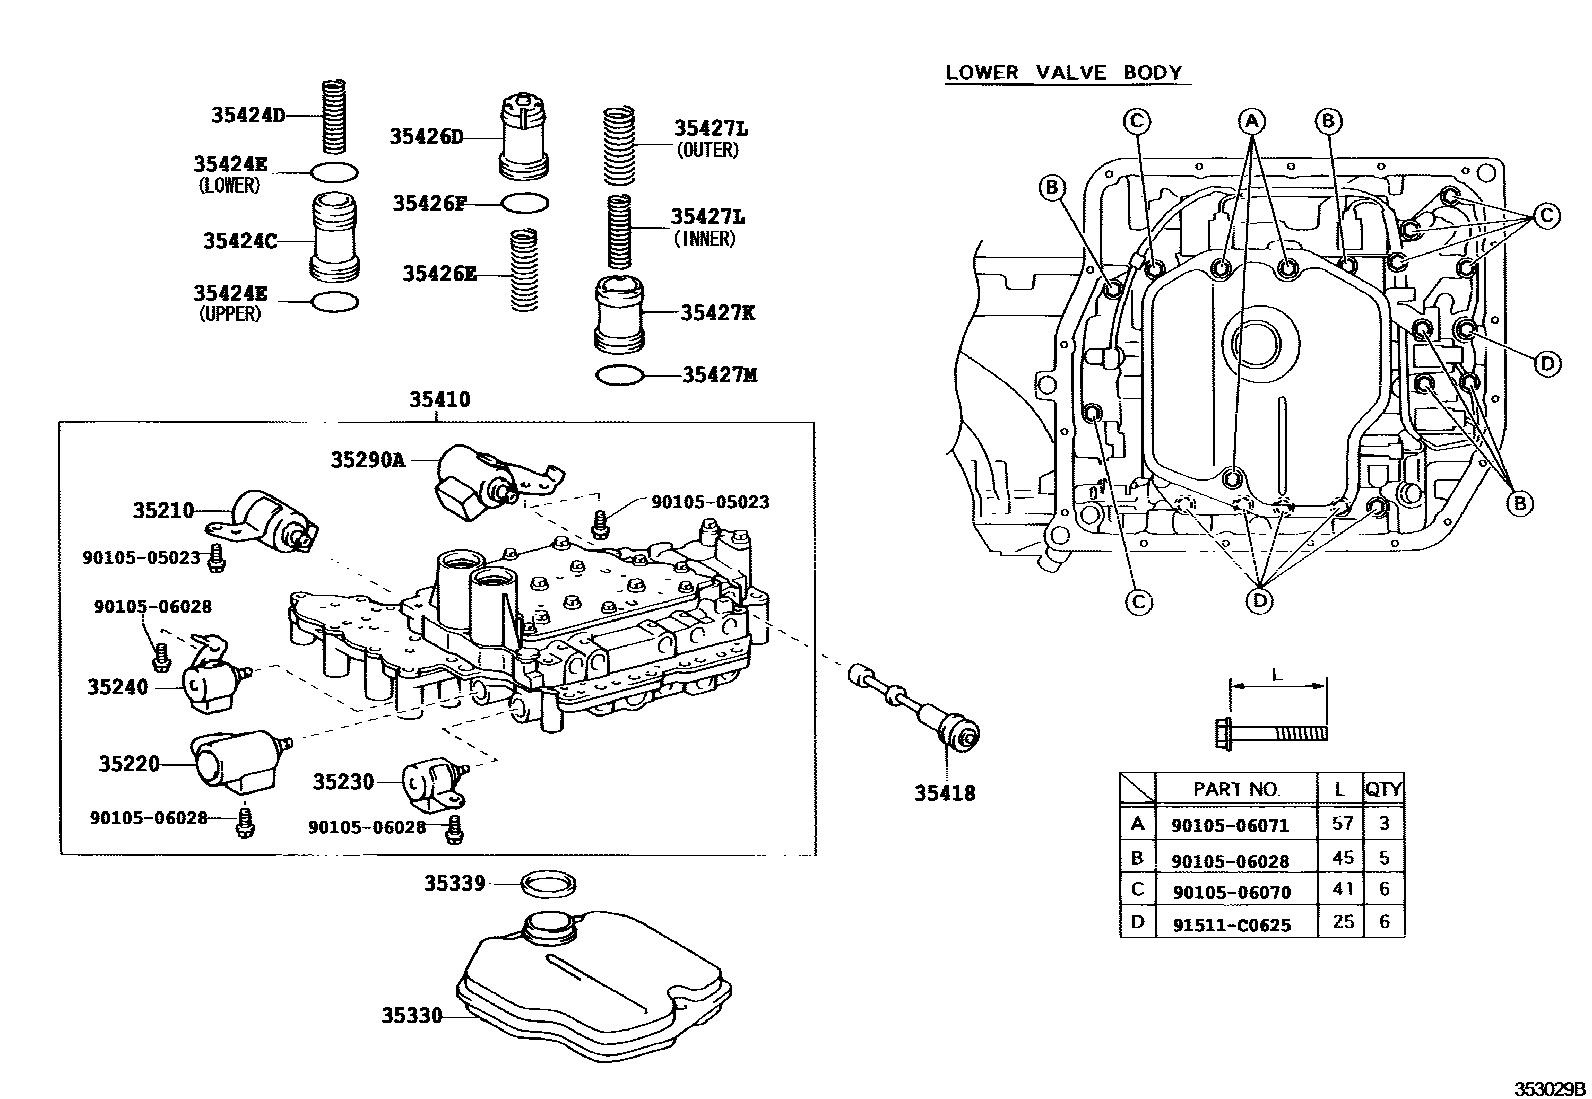 Lexus Es300 Coil On Plug Wiring Diagram Wire Center 2002 F450 2wdgetting Power To The Fuel Pumppassenger Sideheck Ignition Enthusiast Diagrams U2022 Rh Rasalibre Co 1997 Fuse